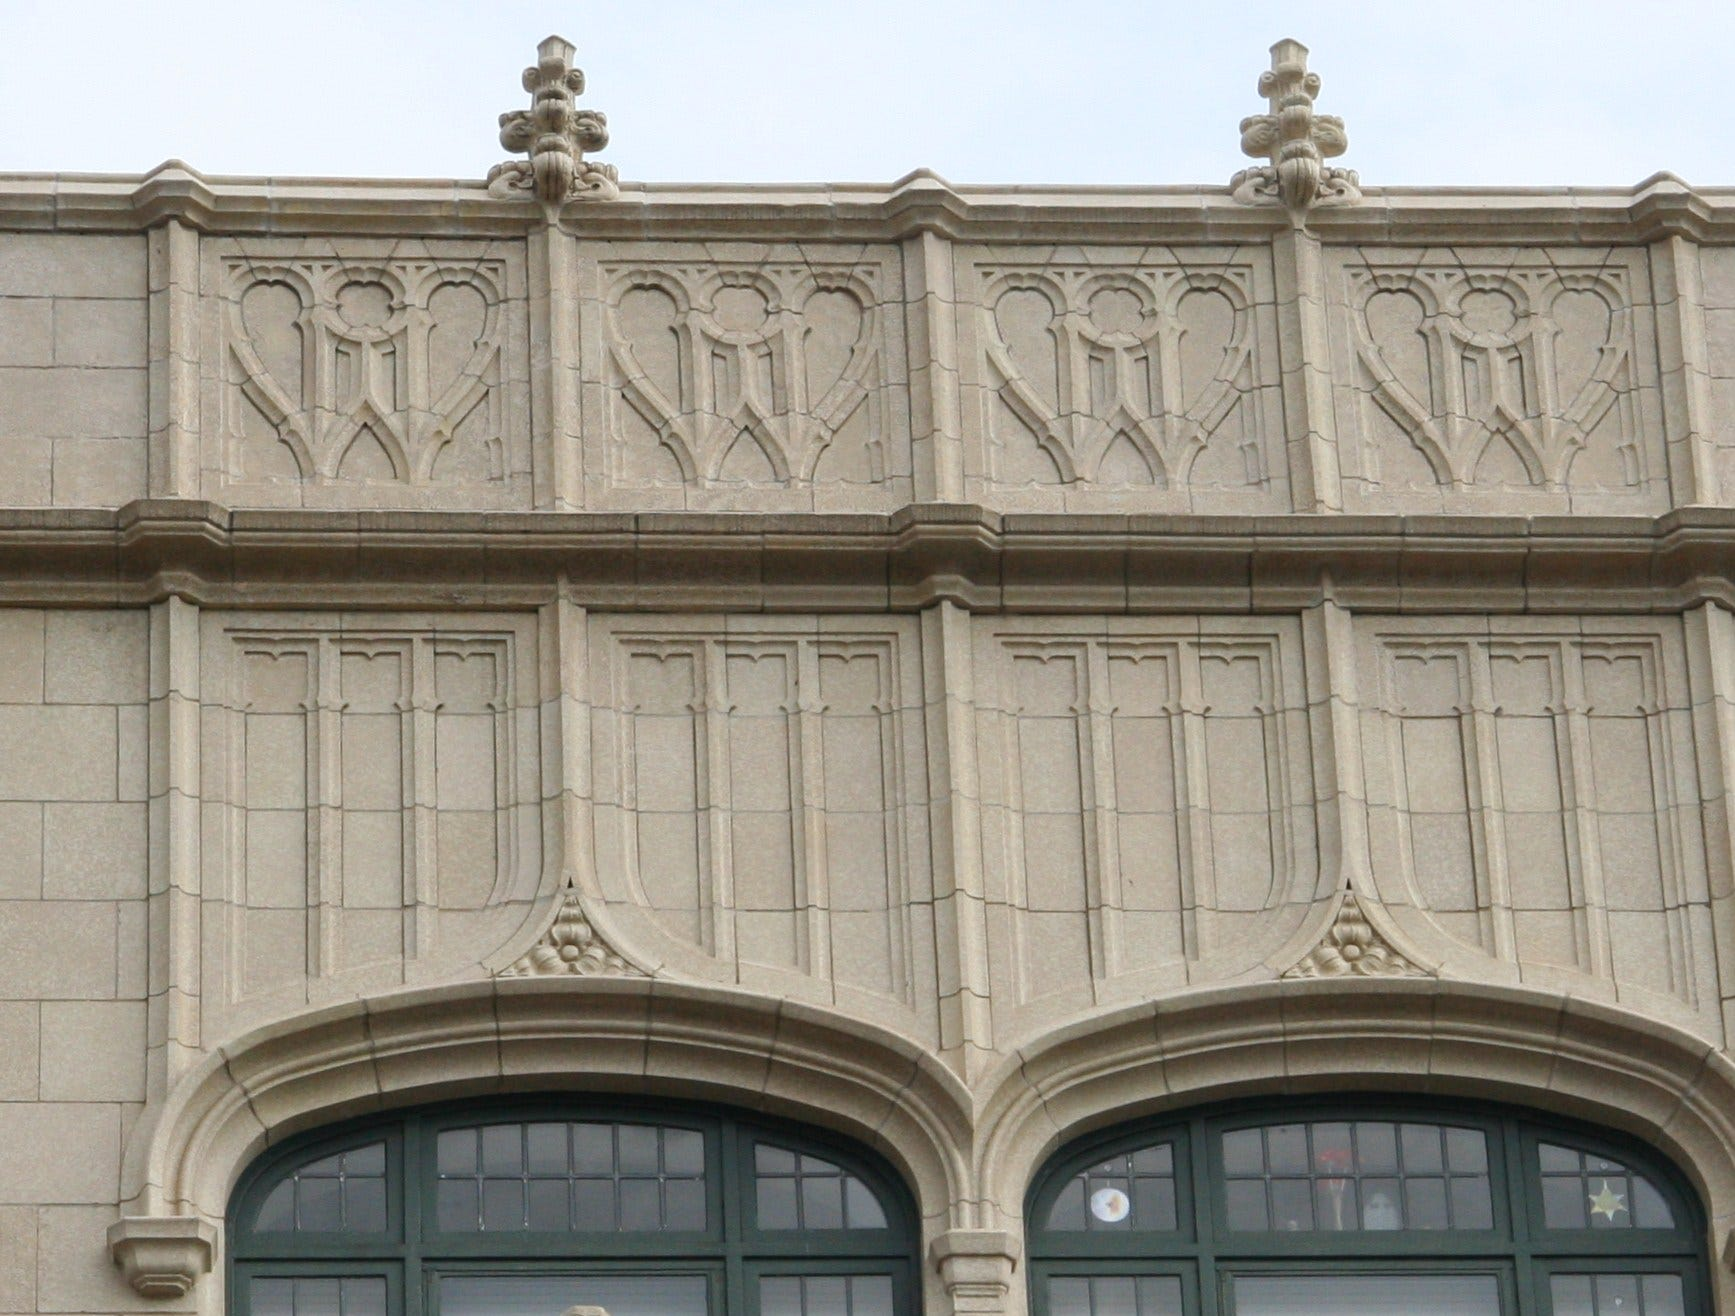 The name of the building's developer, E.W. Grove, is market at the top of the Grove Arcade.